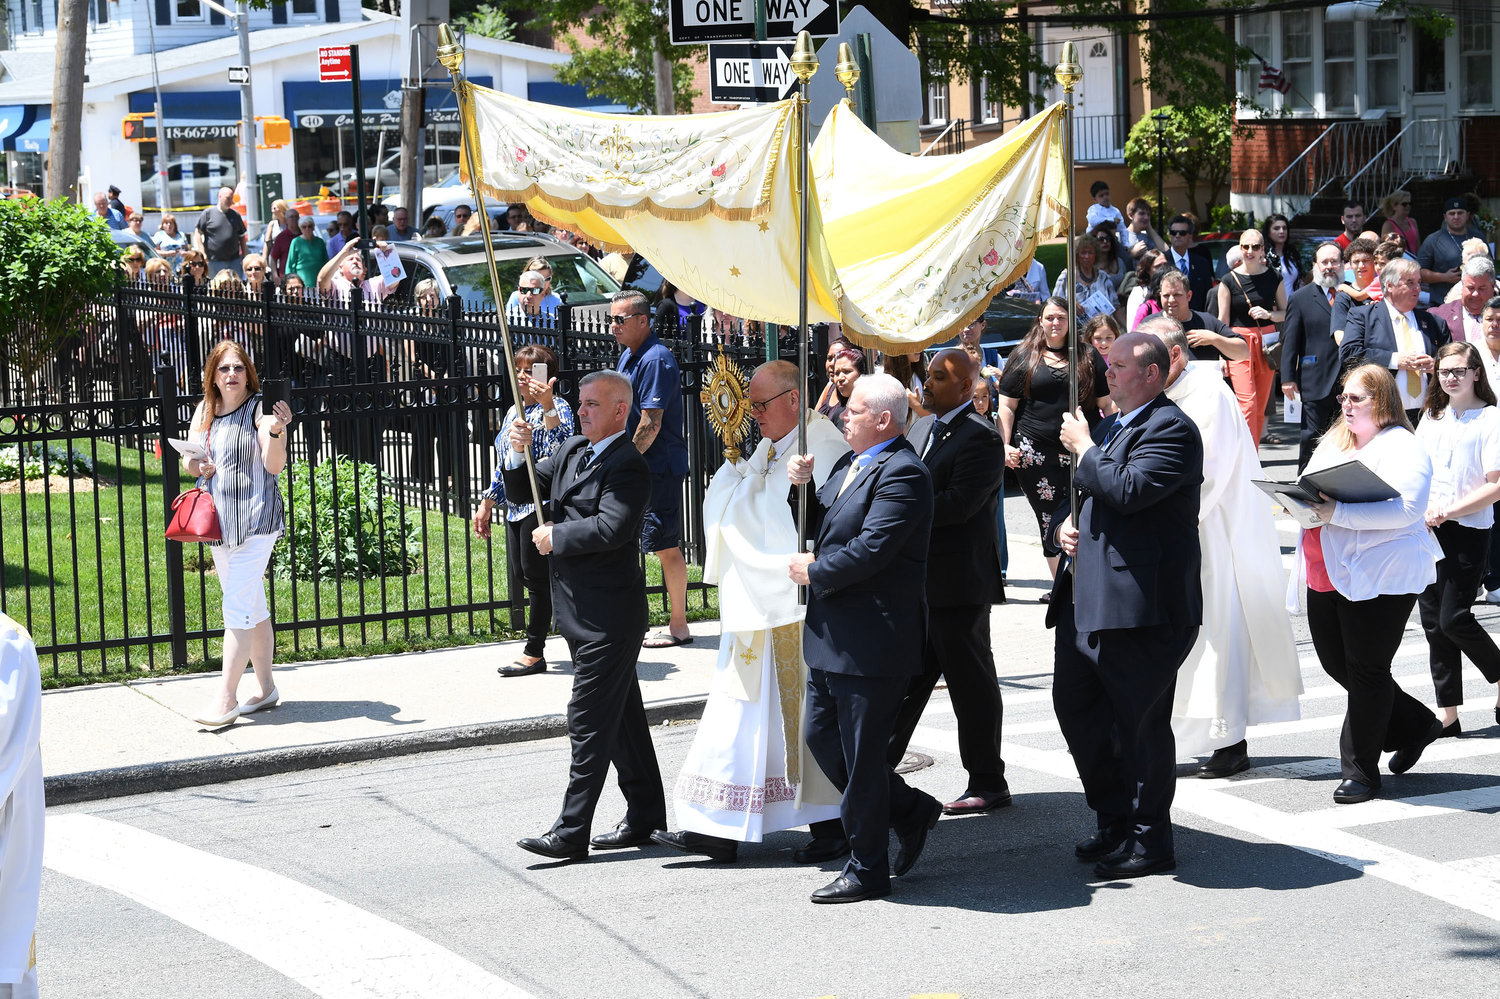 Cardinal Dolan carries the monstrance with the Eucharist in the procession after Mass.